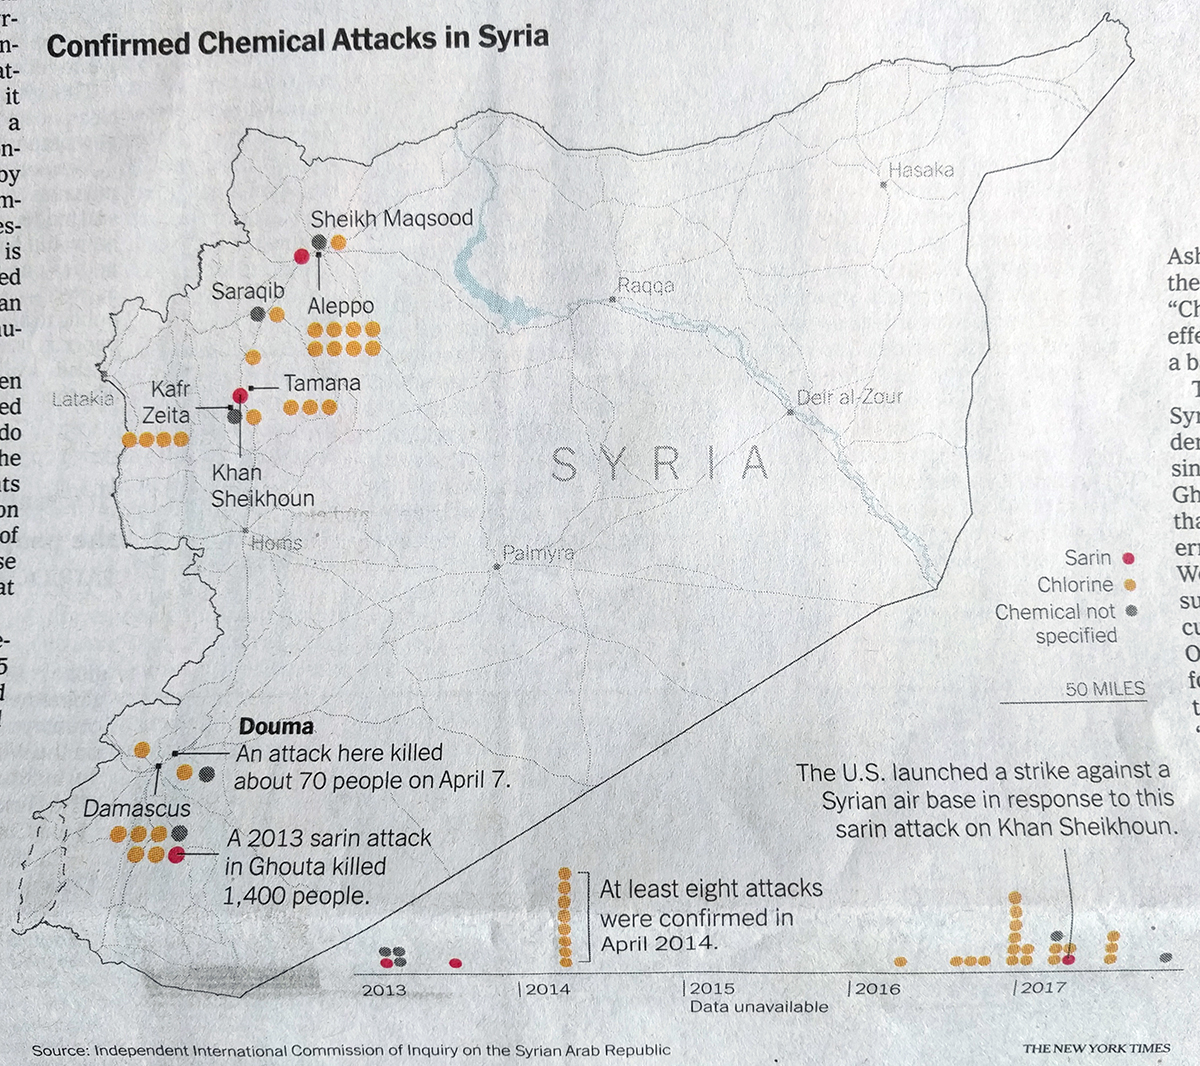 Note the timeline in the lower-right to provide context of when and how frequent the chemical attacks have been